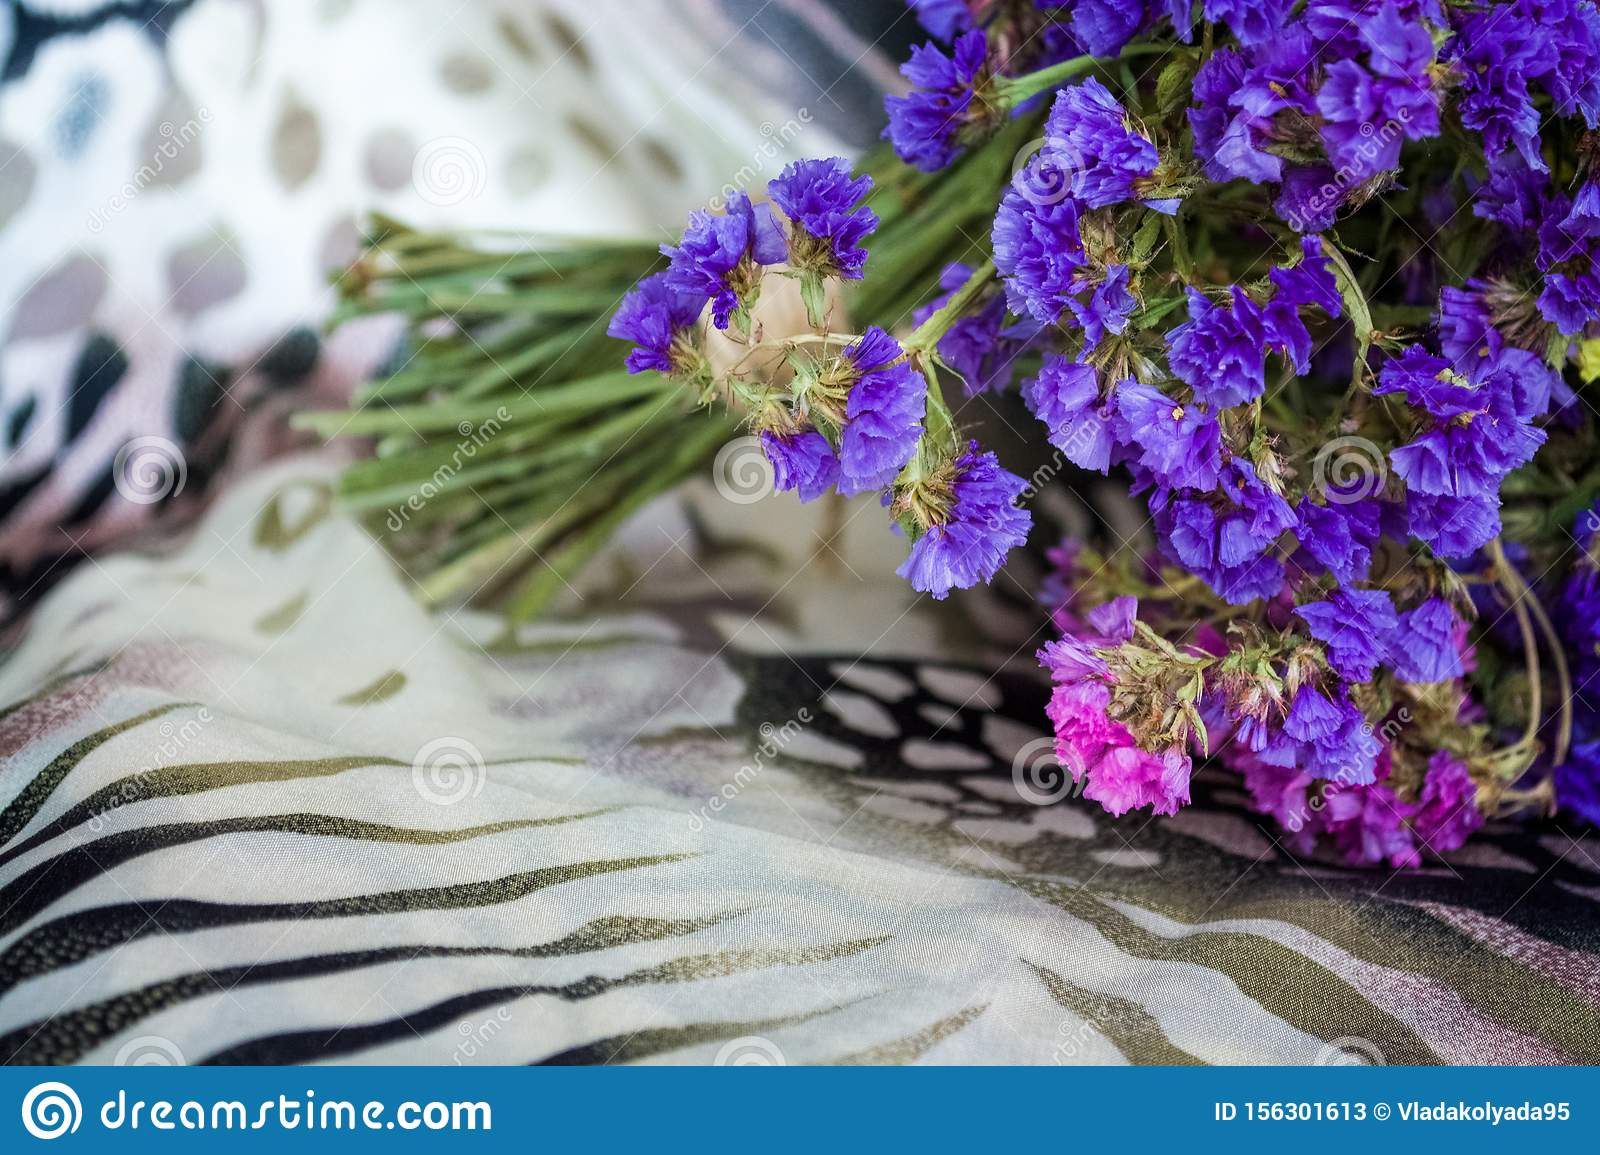 Bouquet Of Field And Arid Flowers On Cloth With Leopard And Zebra Print Stock Image Image Of Flora Flower 156301613